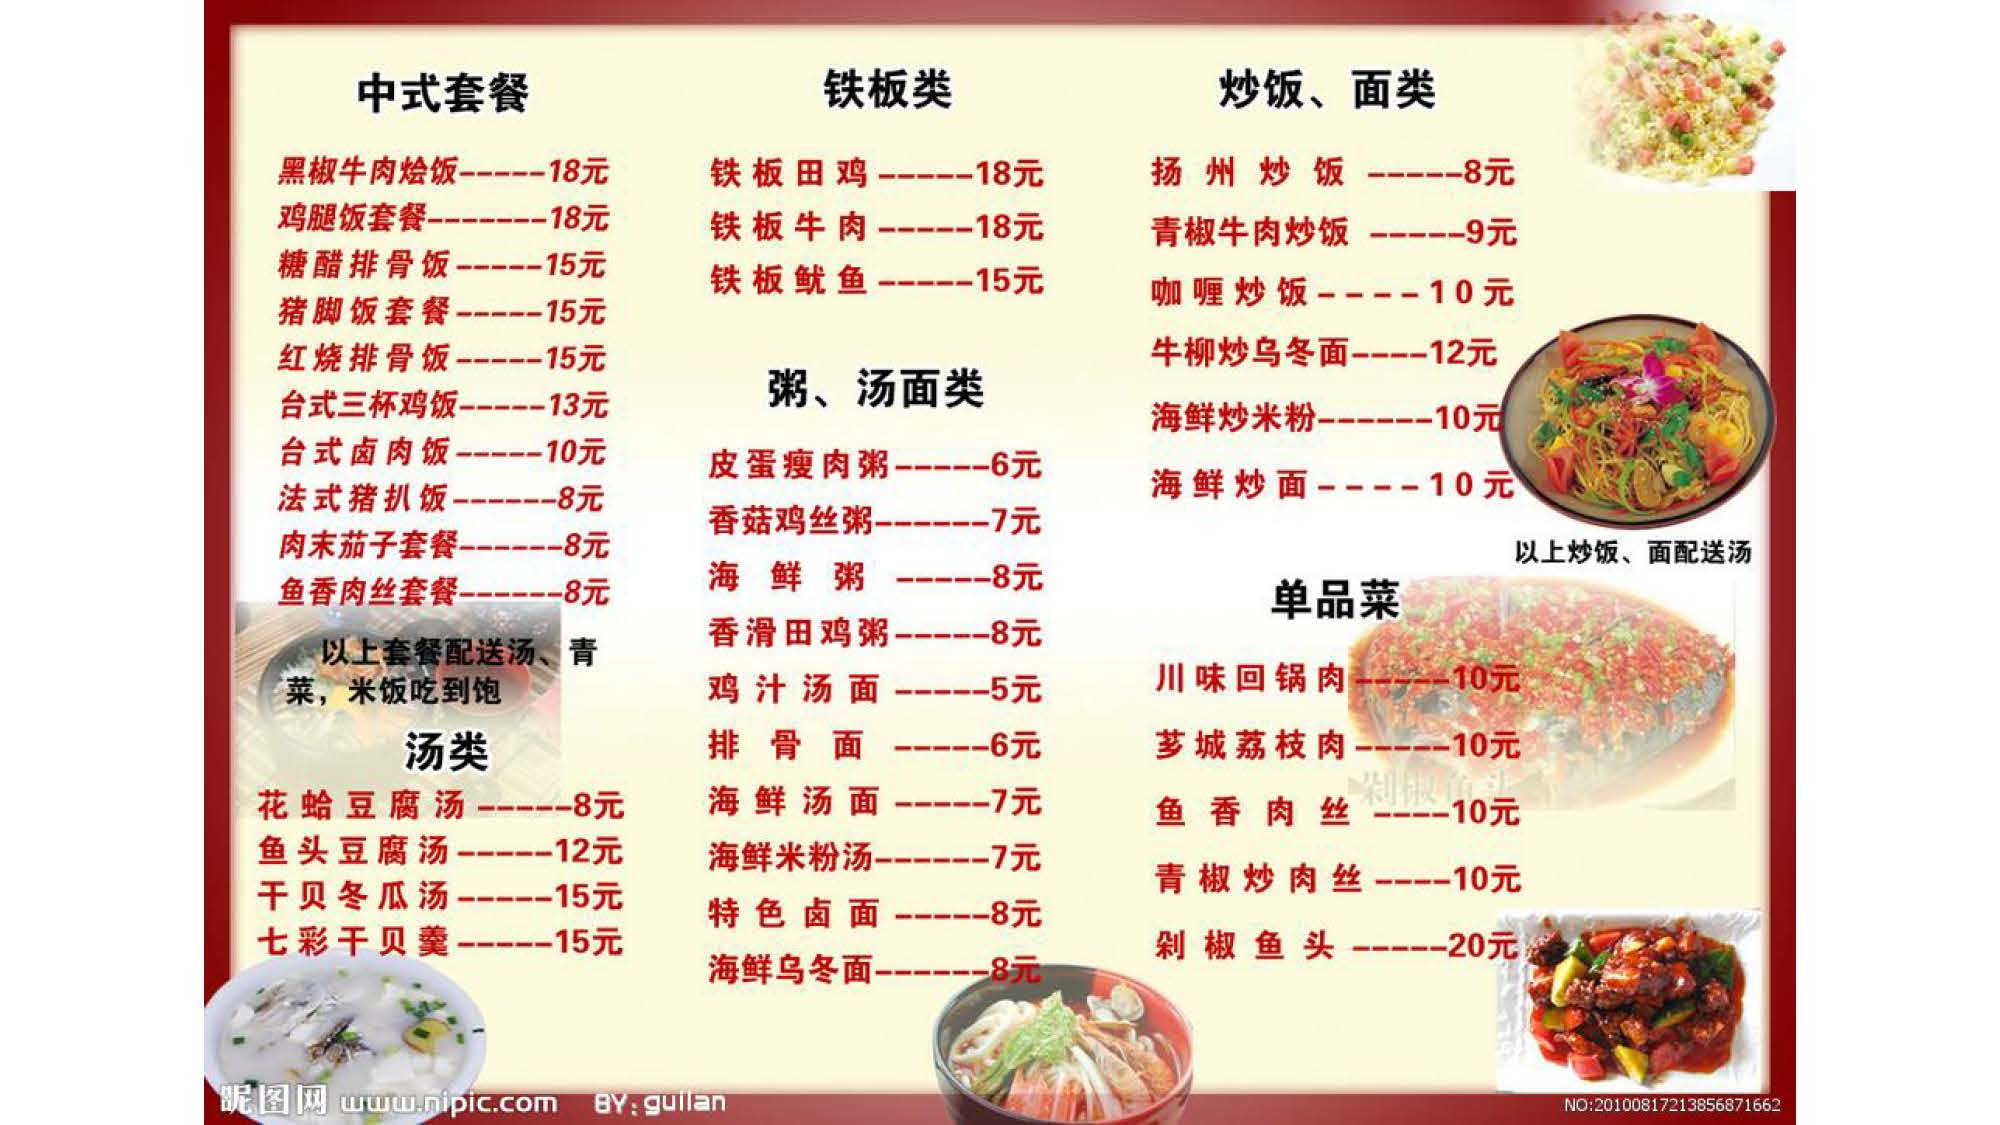 LIVE] How to Read a Chinese Menu 101